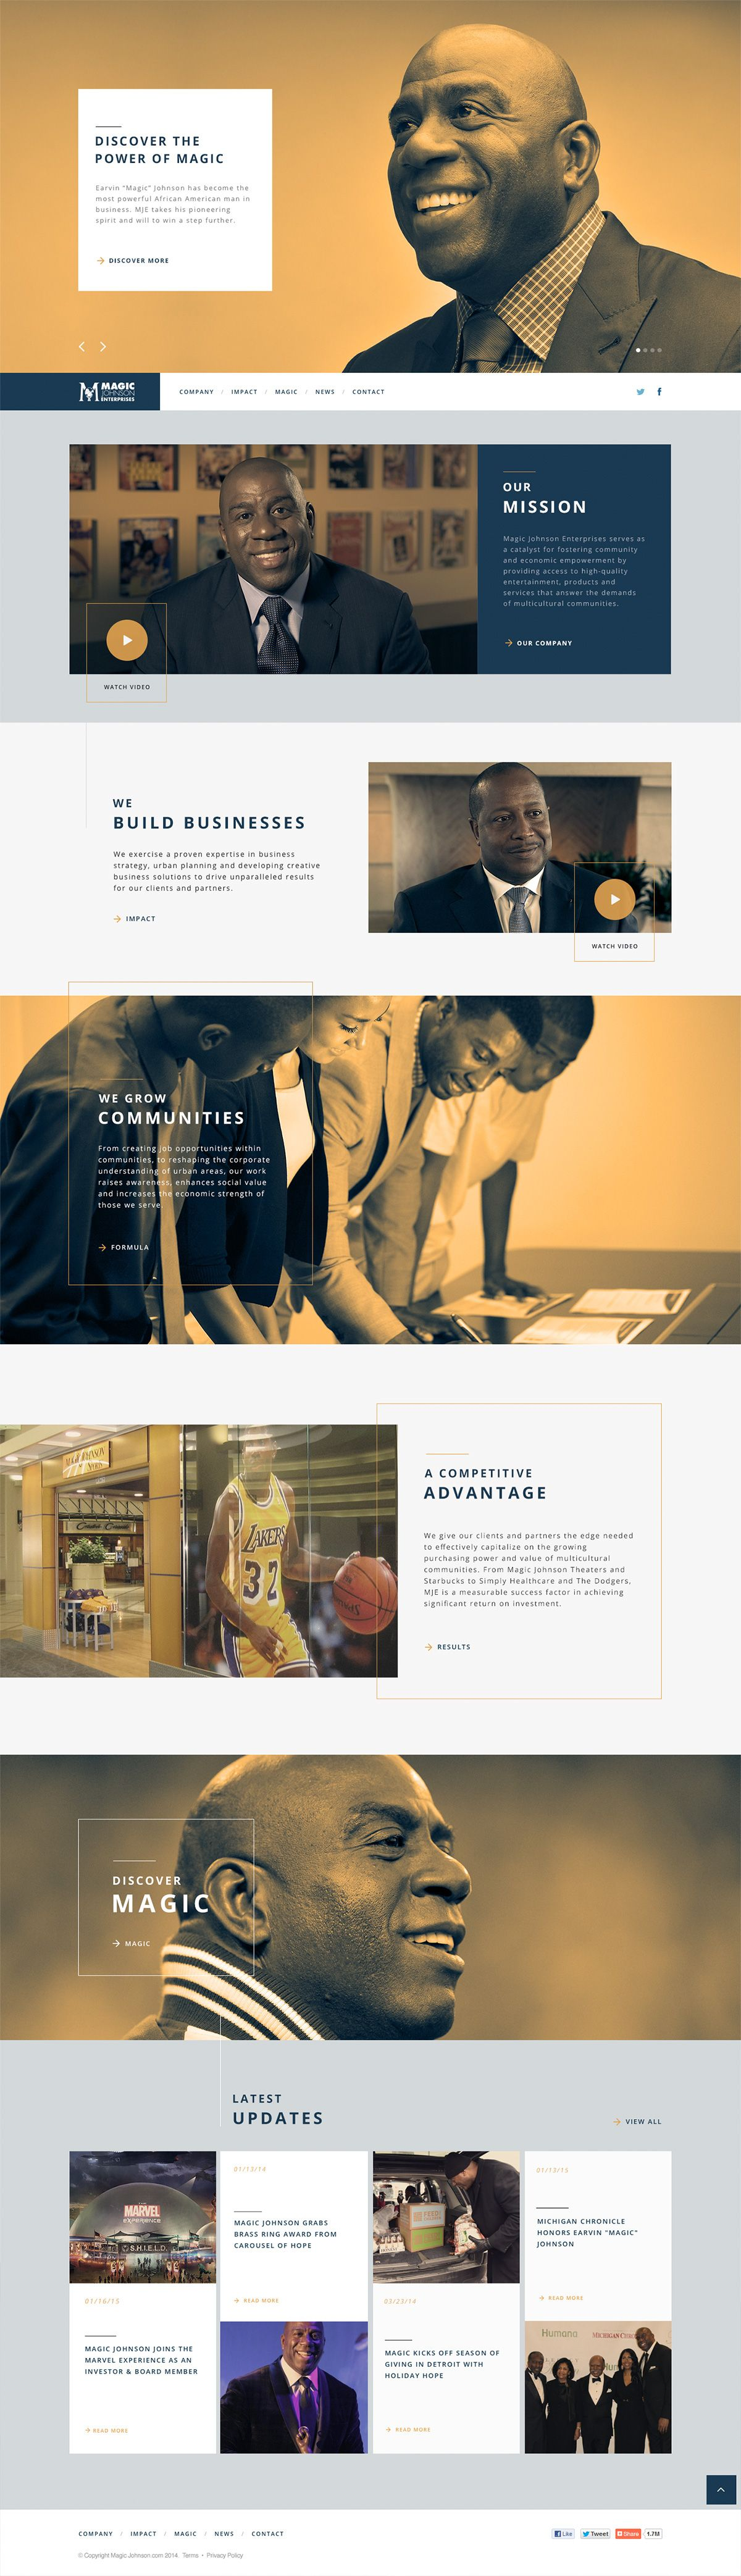 Site Design For Quantasy Earvin Magic Johnson Has Become The Most Powerful African American M Corporate Web Design Web Layout Design Web Design Inspiration